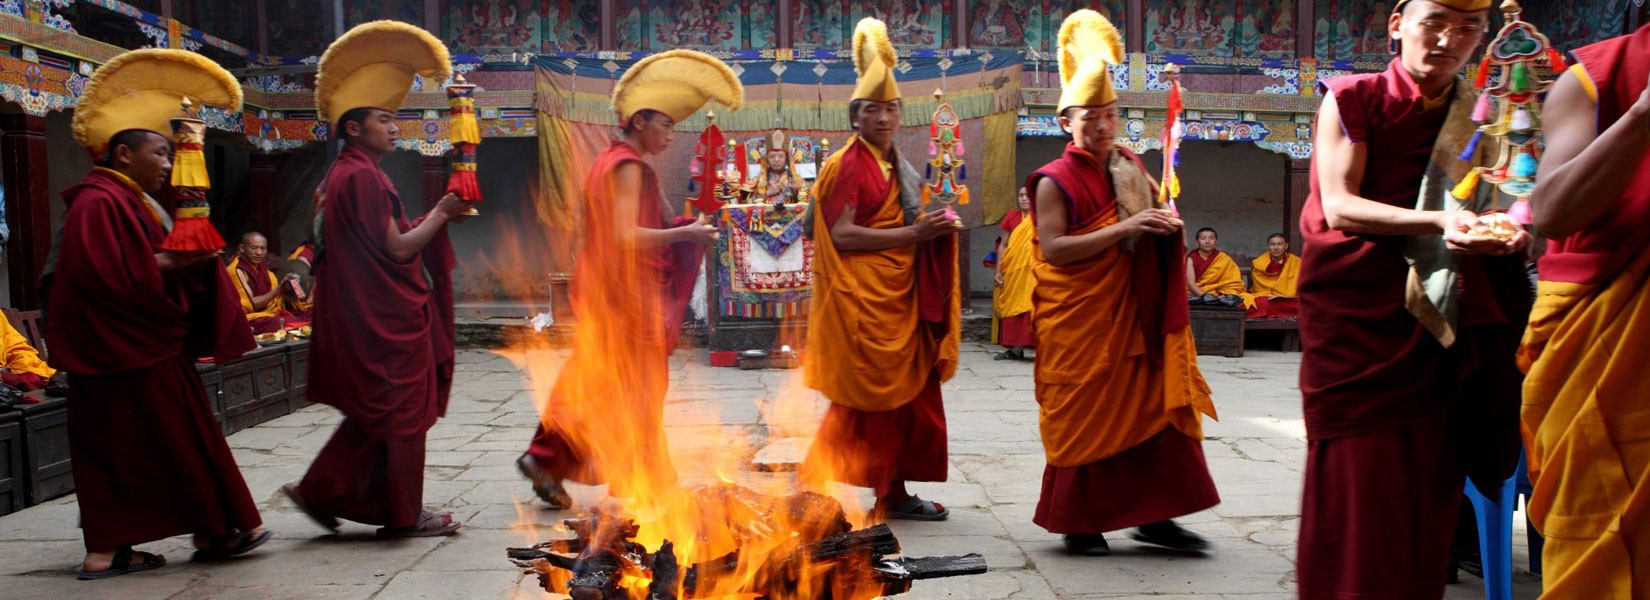 Monks performing fire puja during Mani Rimdu at Tengboche